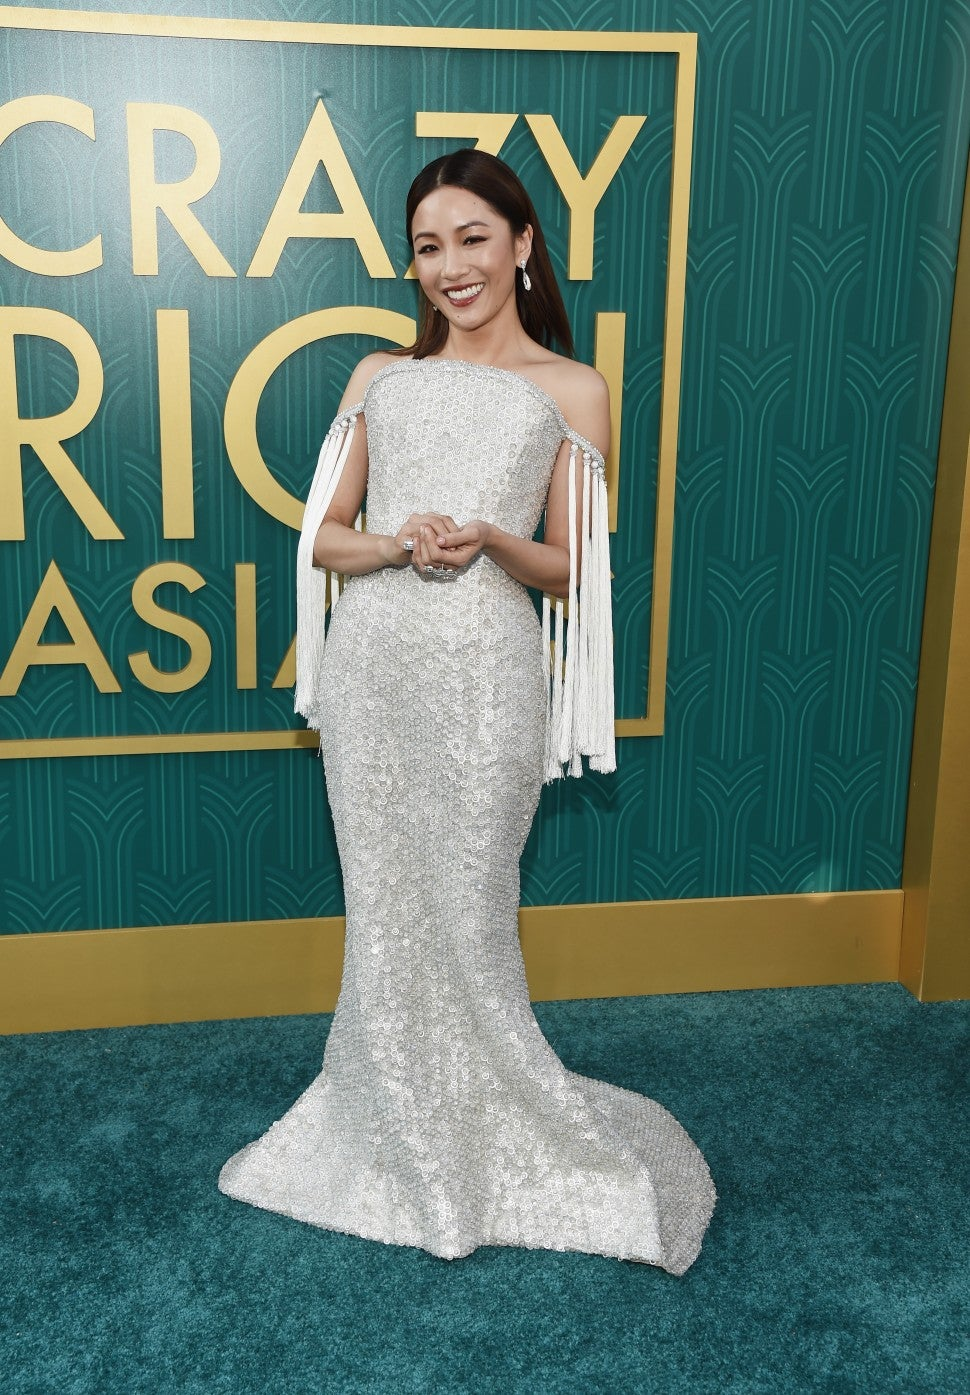 Constance Wu at Crazy Rich Asians premiere